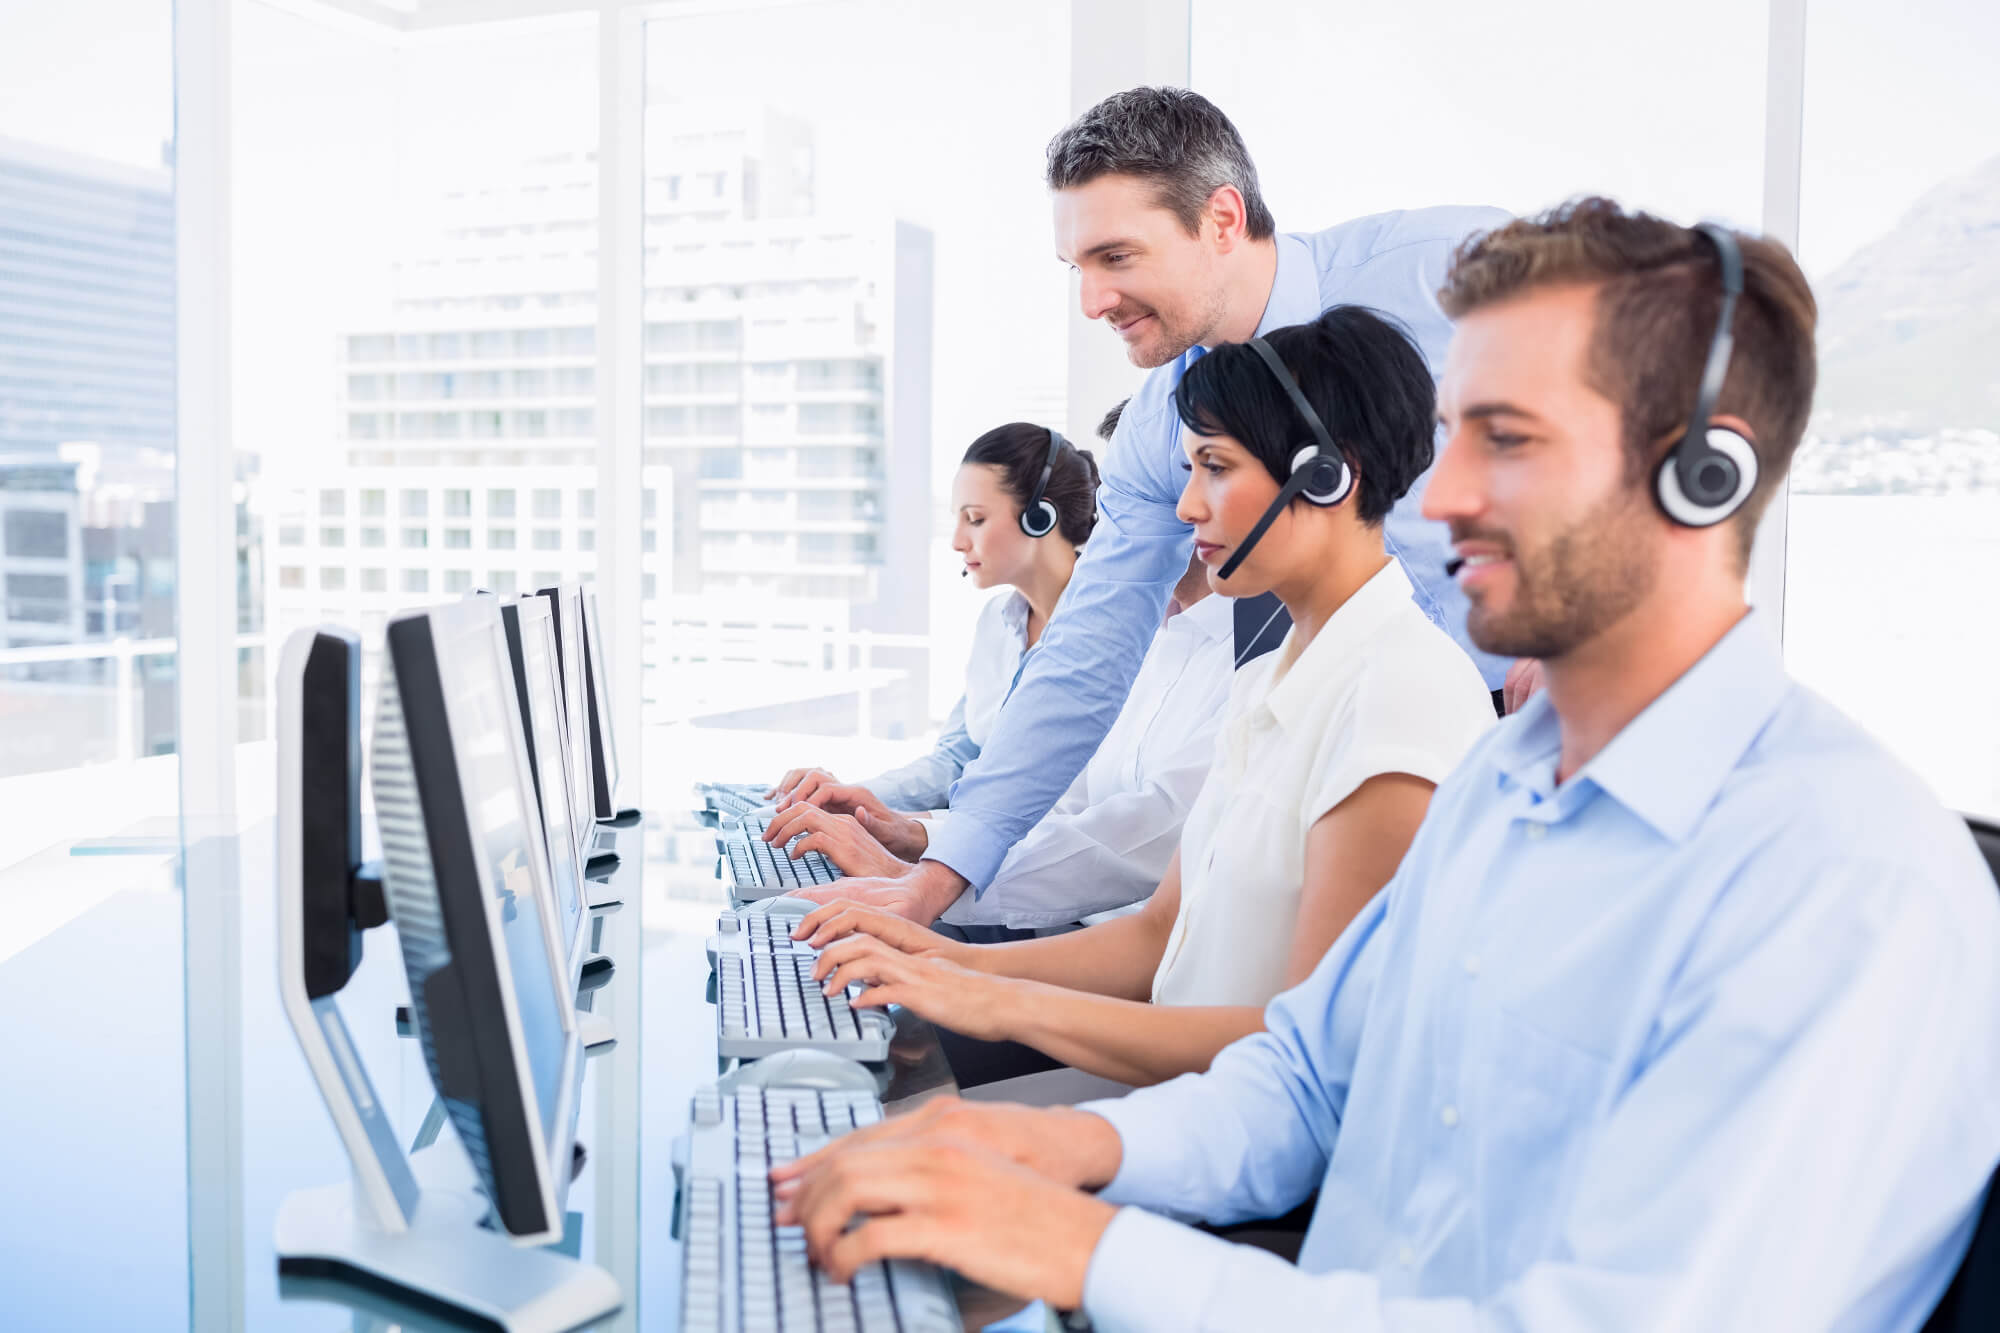 Customer Service Reps on Computers while Man with Salt and Pepper Hair Overlooks Them